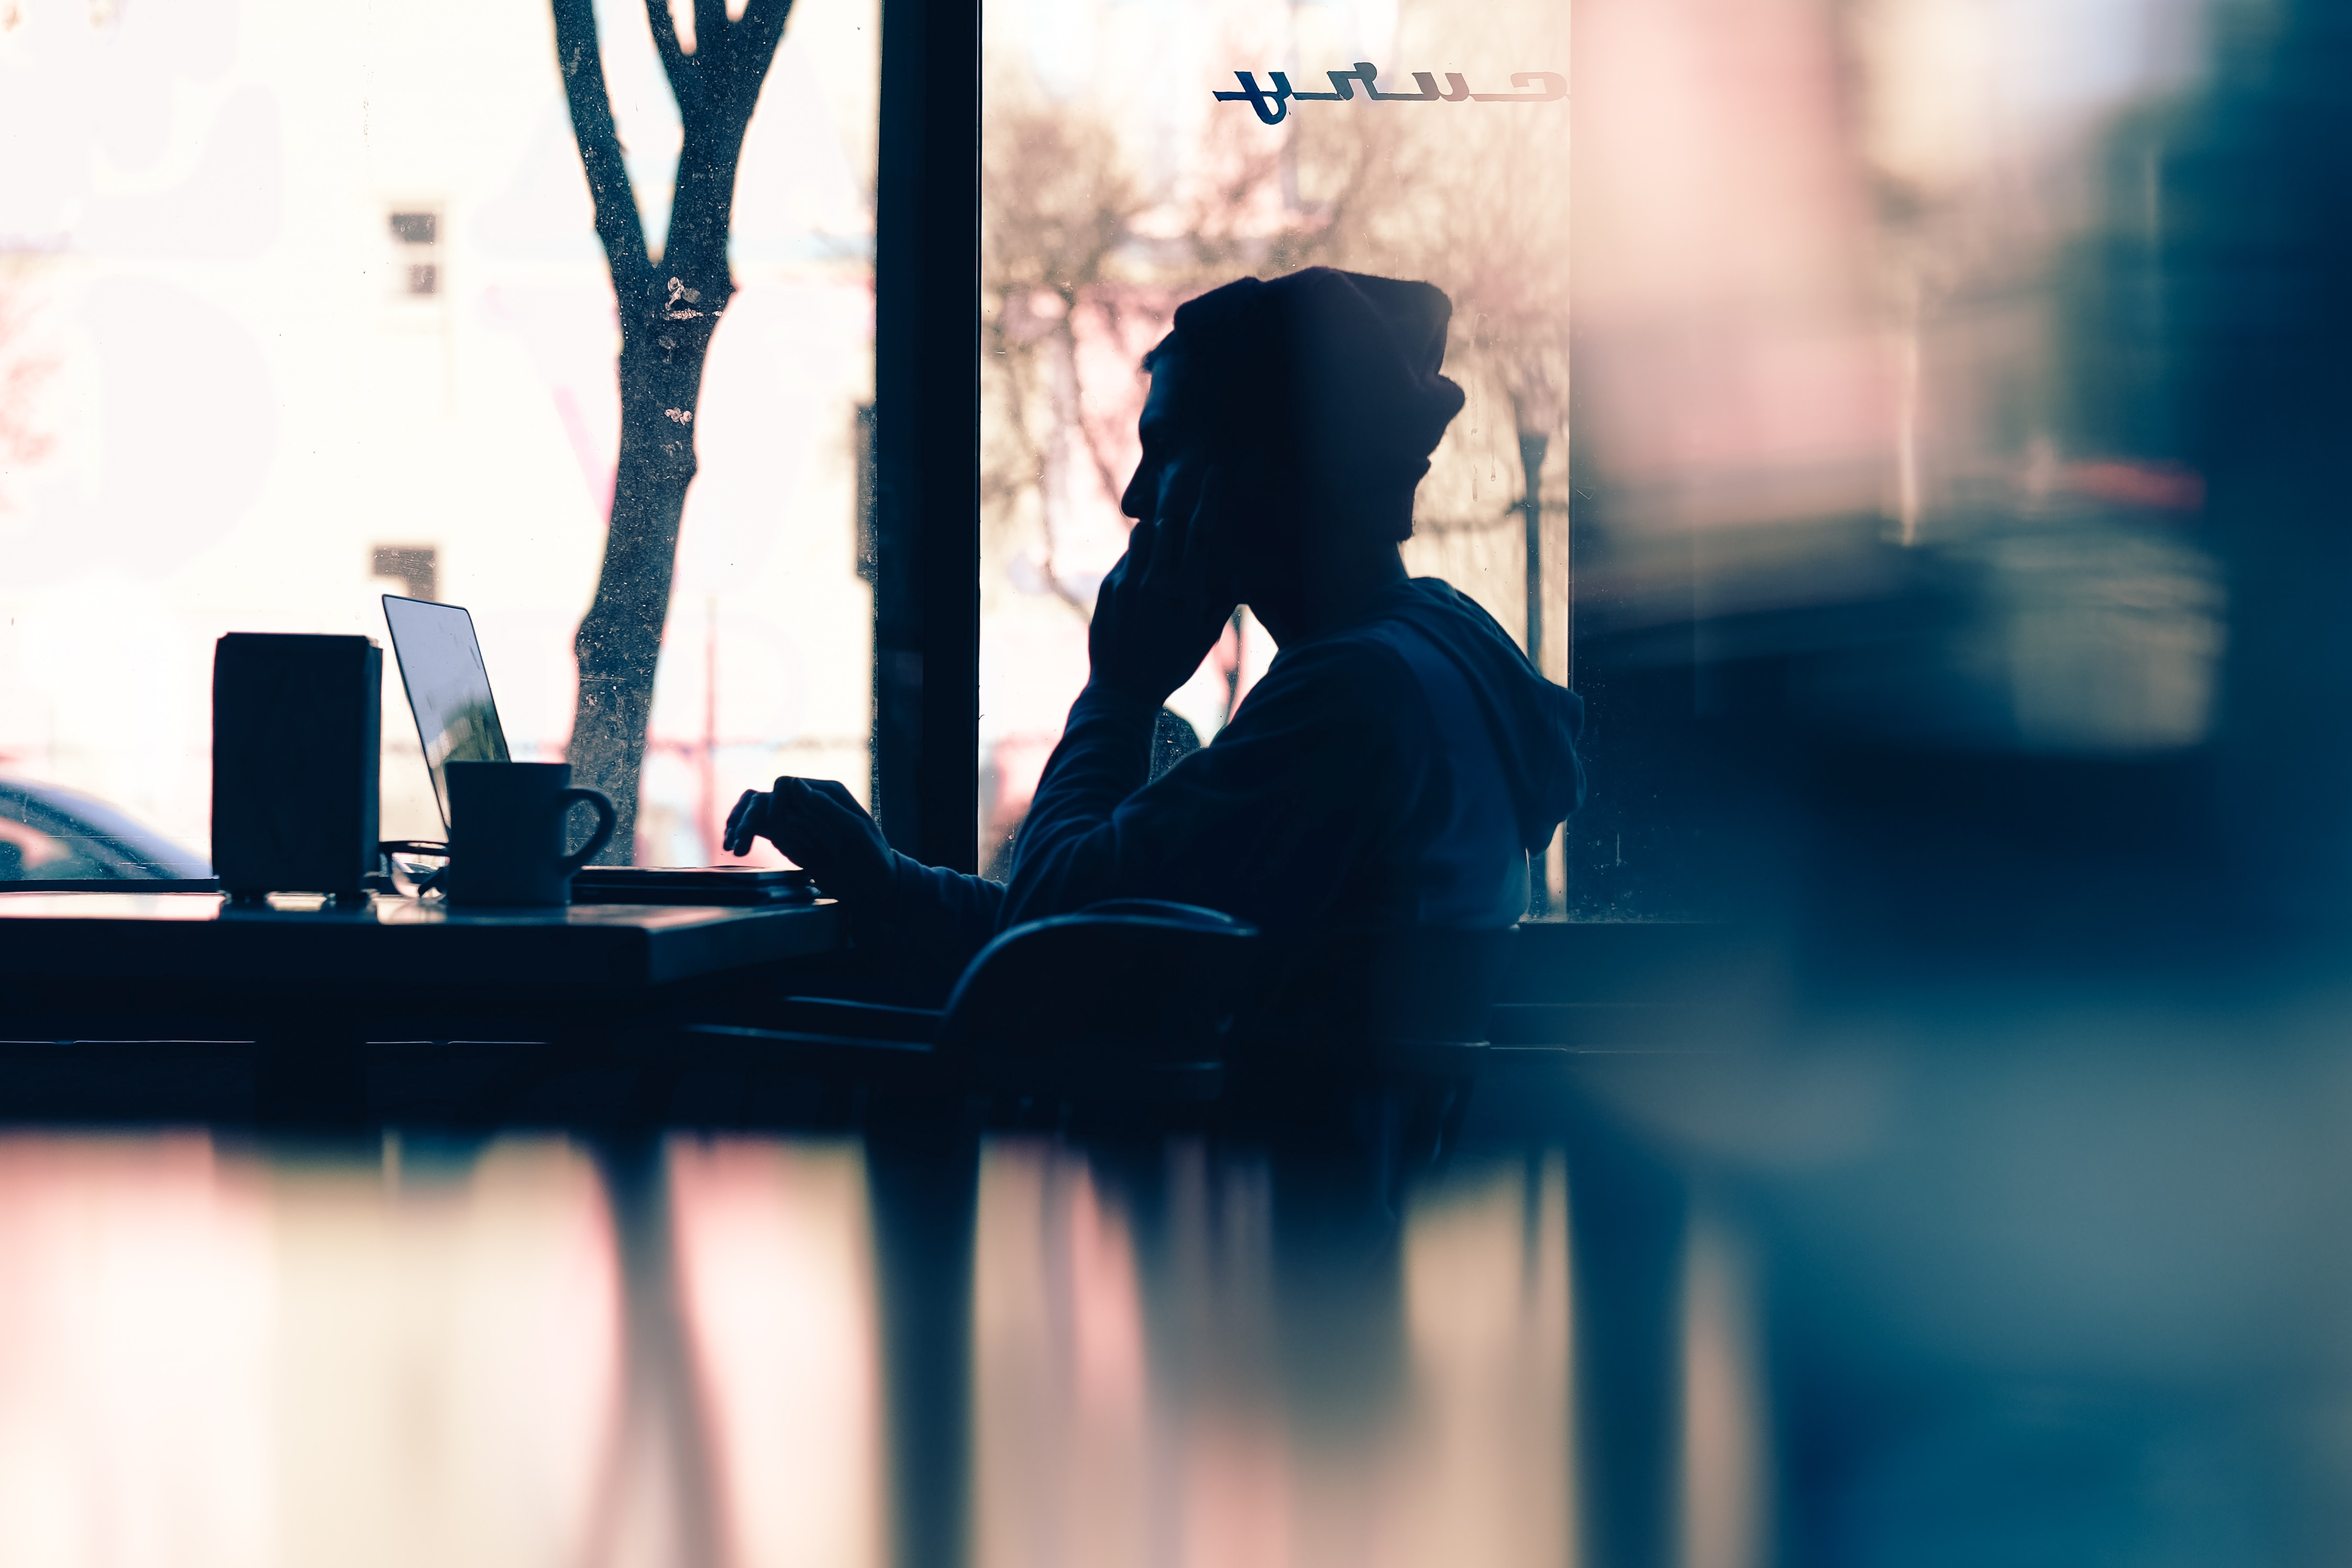 Feeling distracted at work? 5 simple ways to get your focus back.